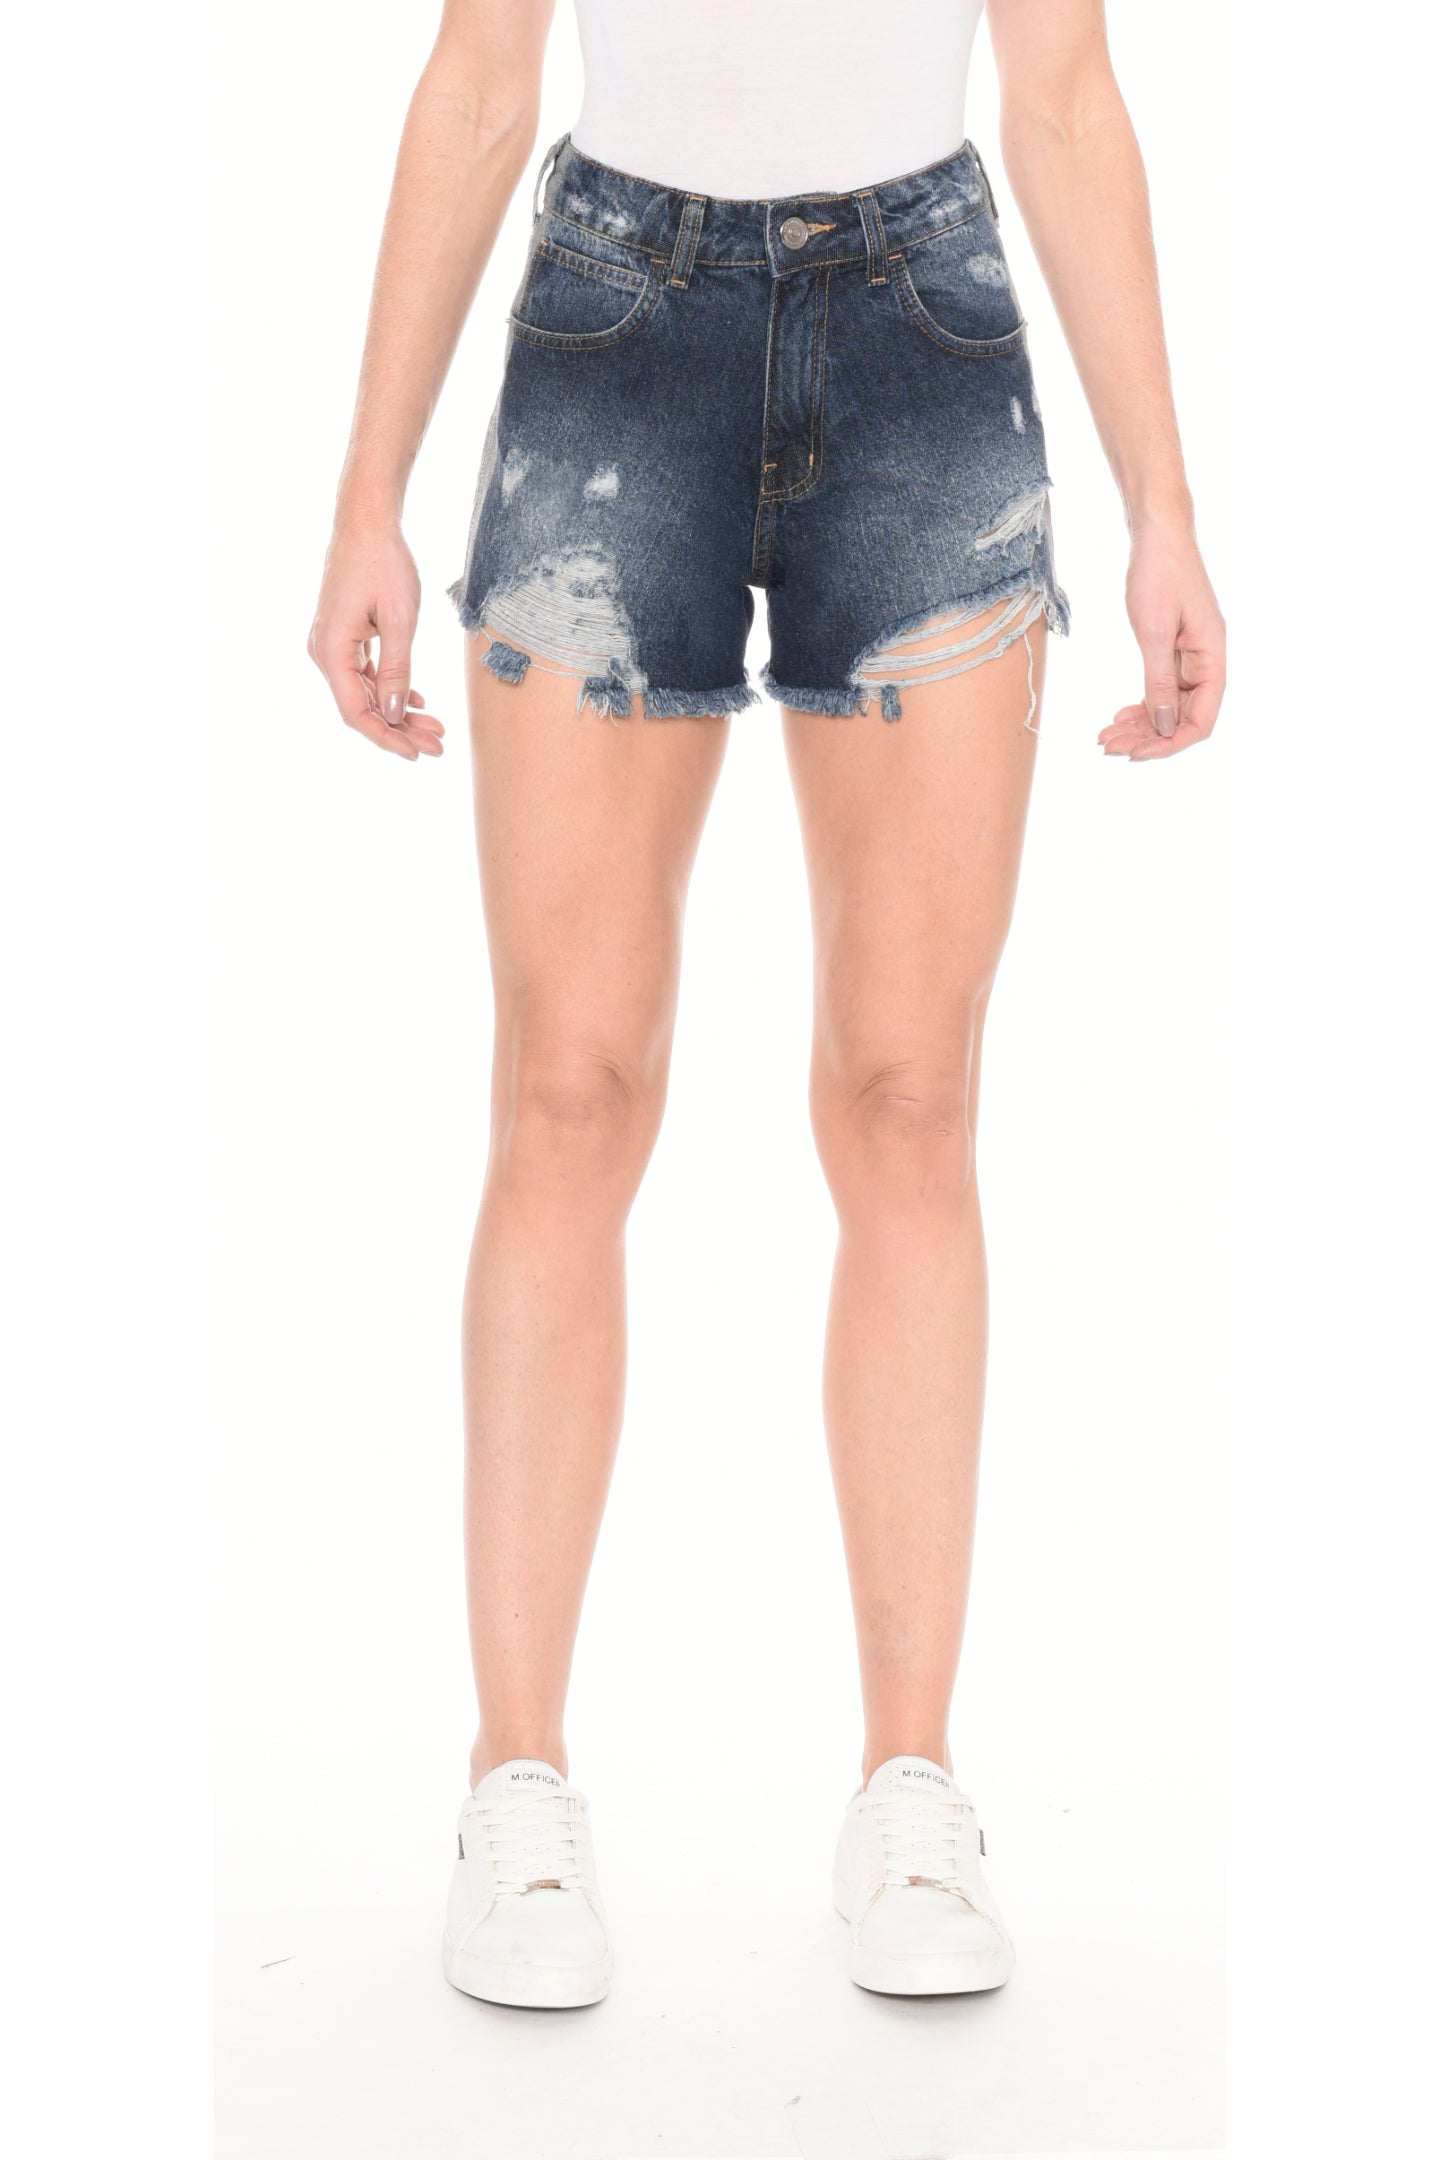 SHORTS JEANS C4 DARK  GLITTER LATERAL